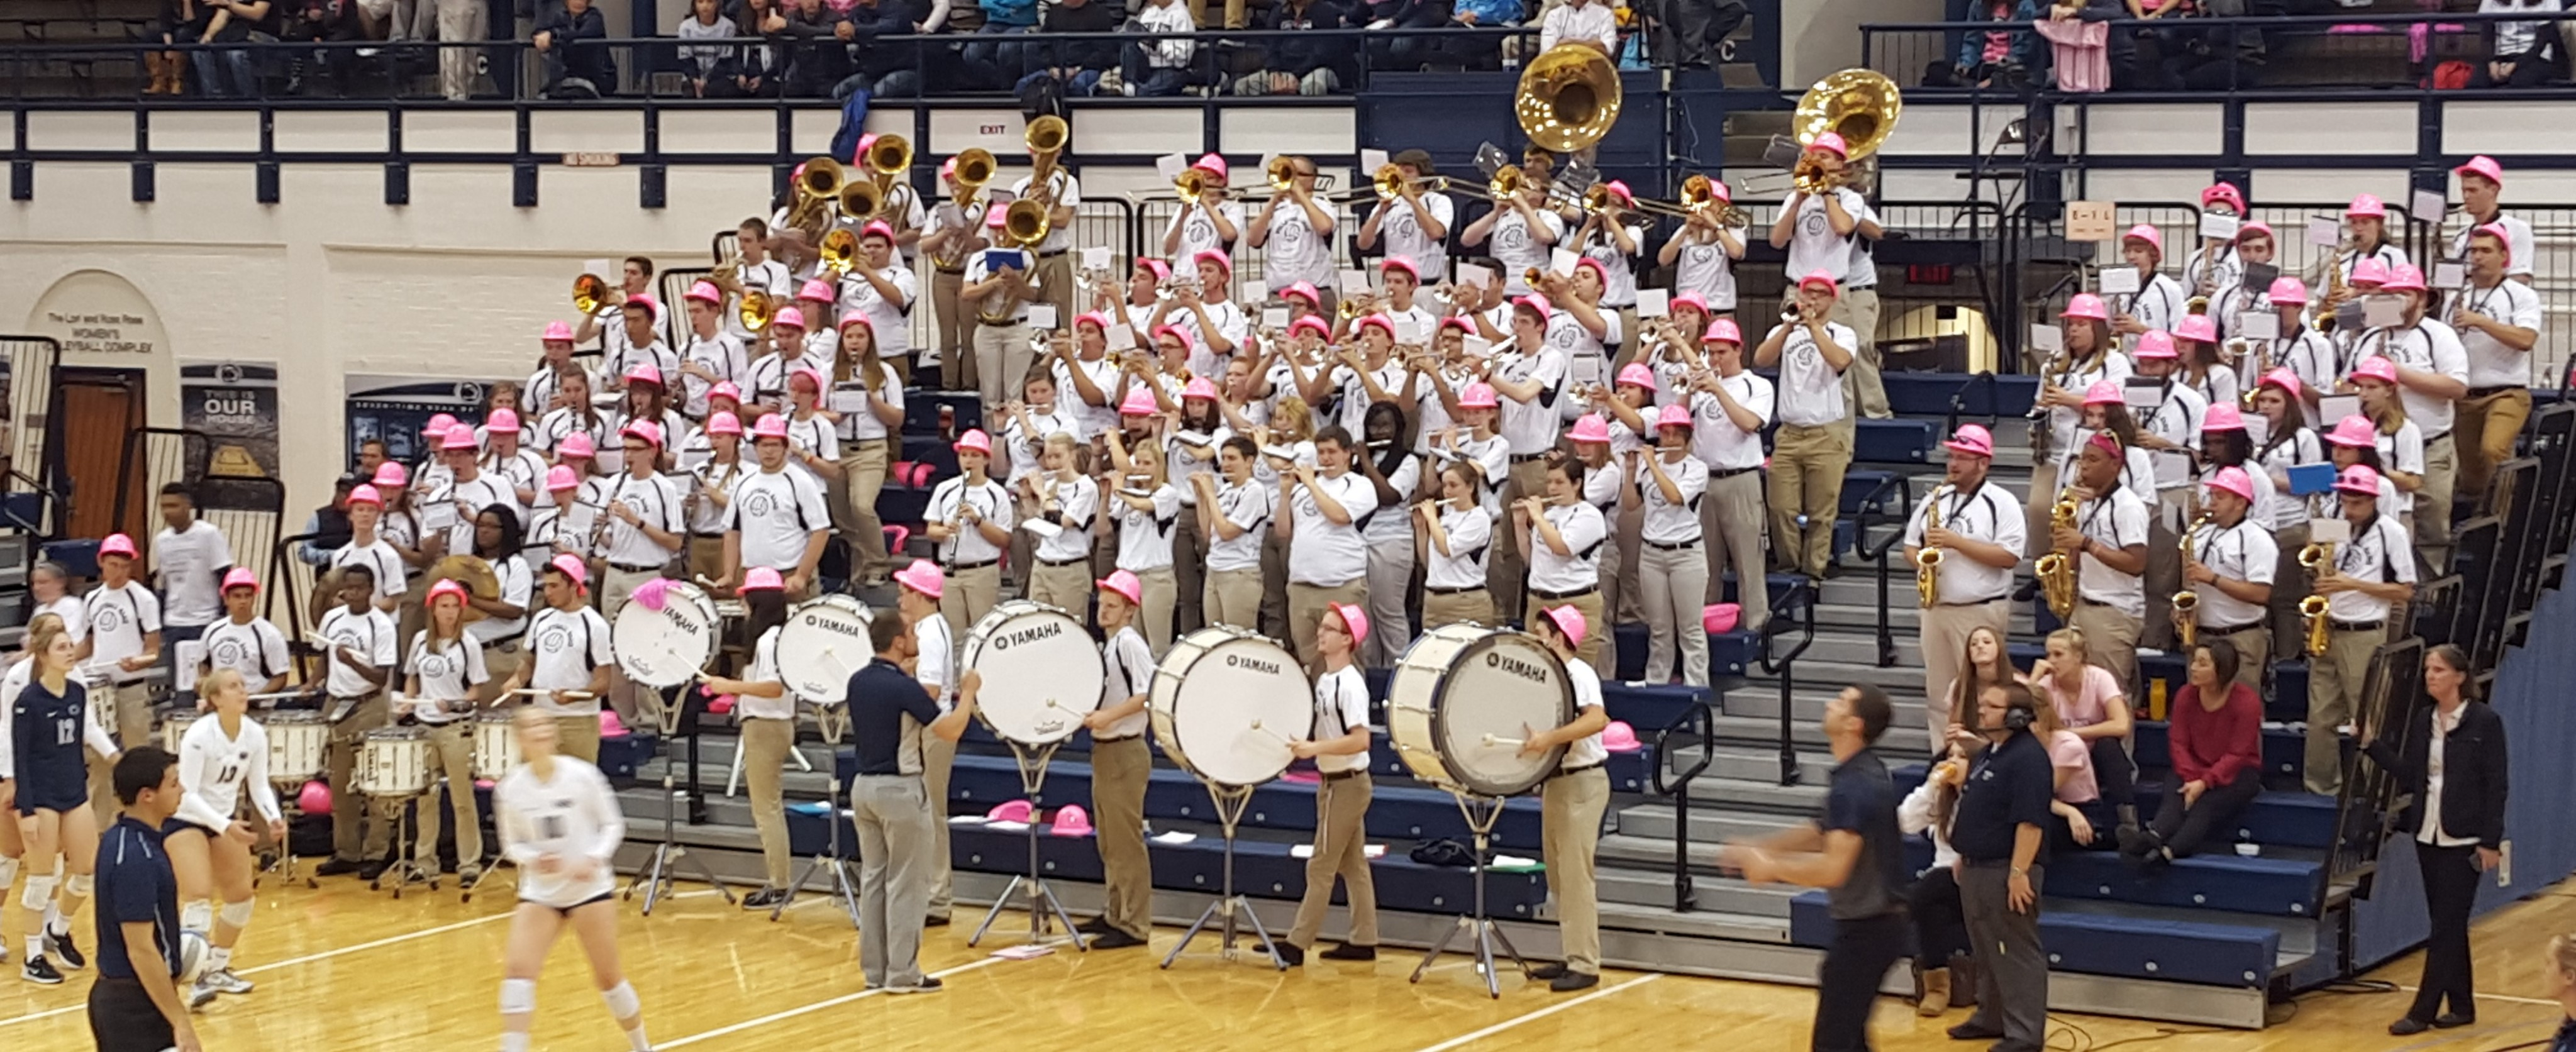 The Volleyball Pep Band was out in force for Dig Pink Night